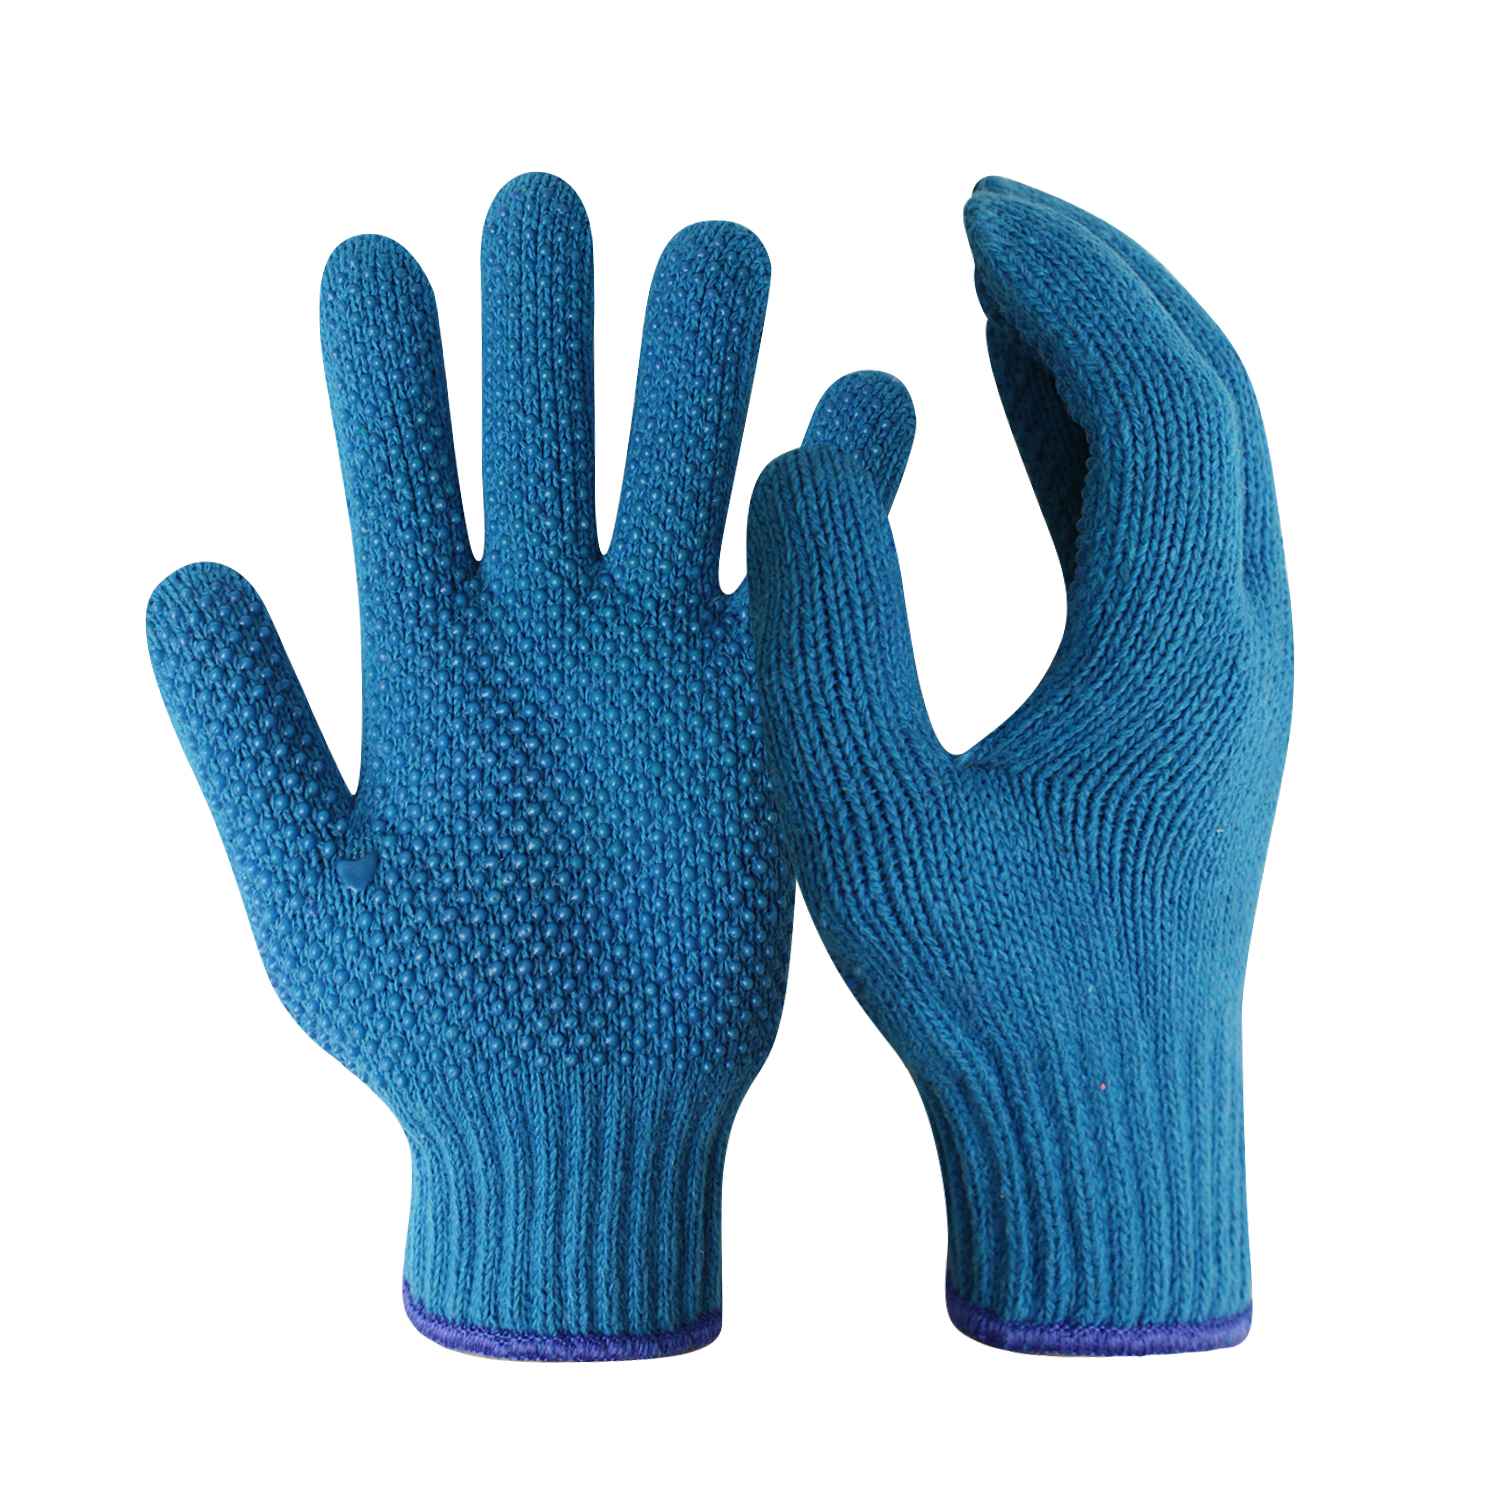 Blue Cotton Knitted Work Safety Gloves/CKG-008